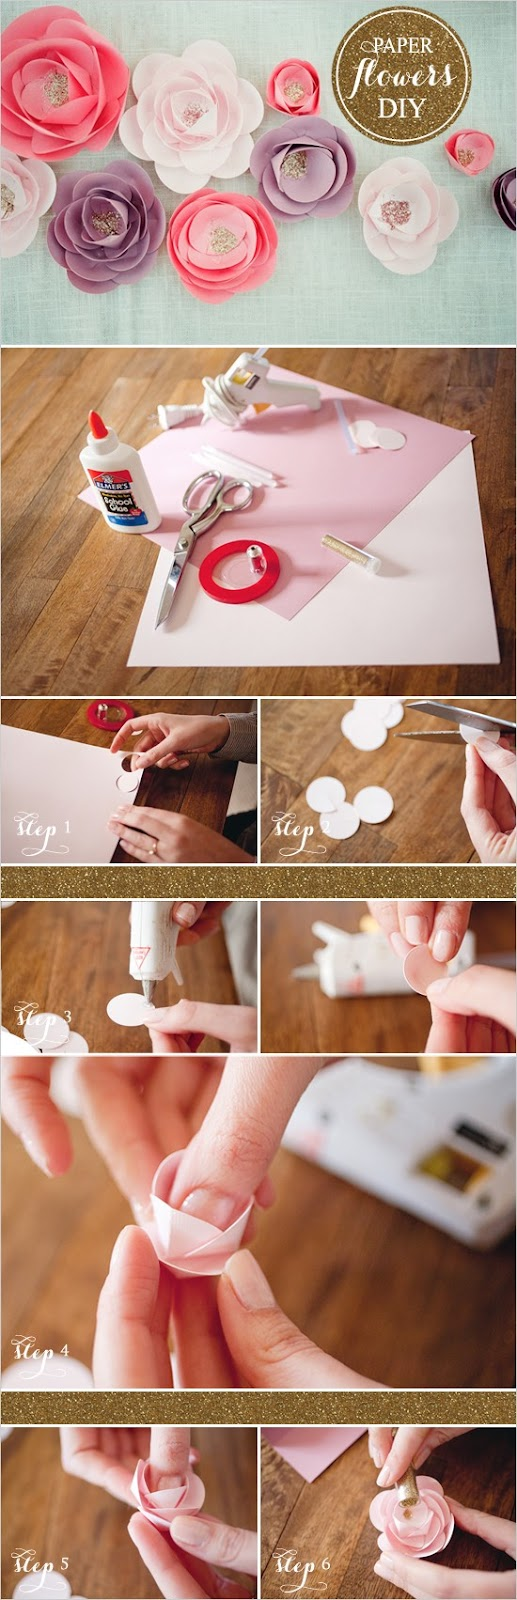 DIY+Flower+Tutorial Flower Tutorials Directory | Blog Birthday Celebrations